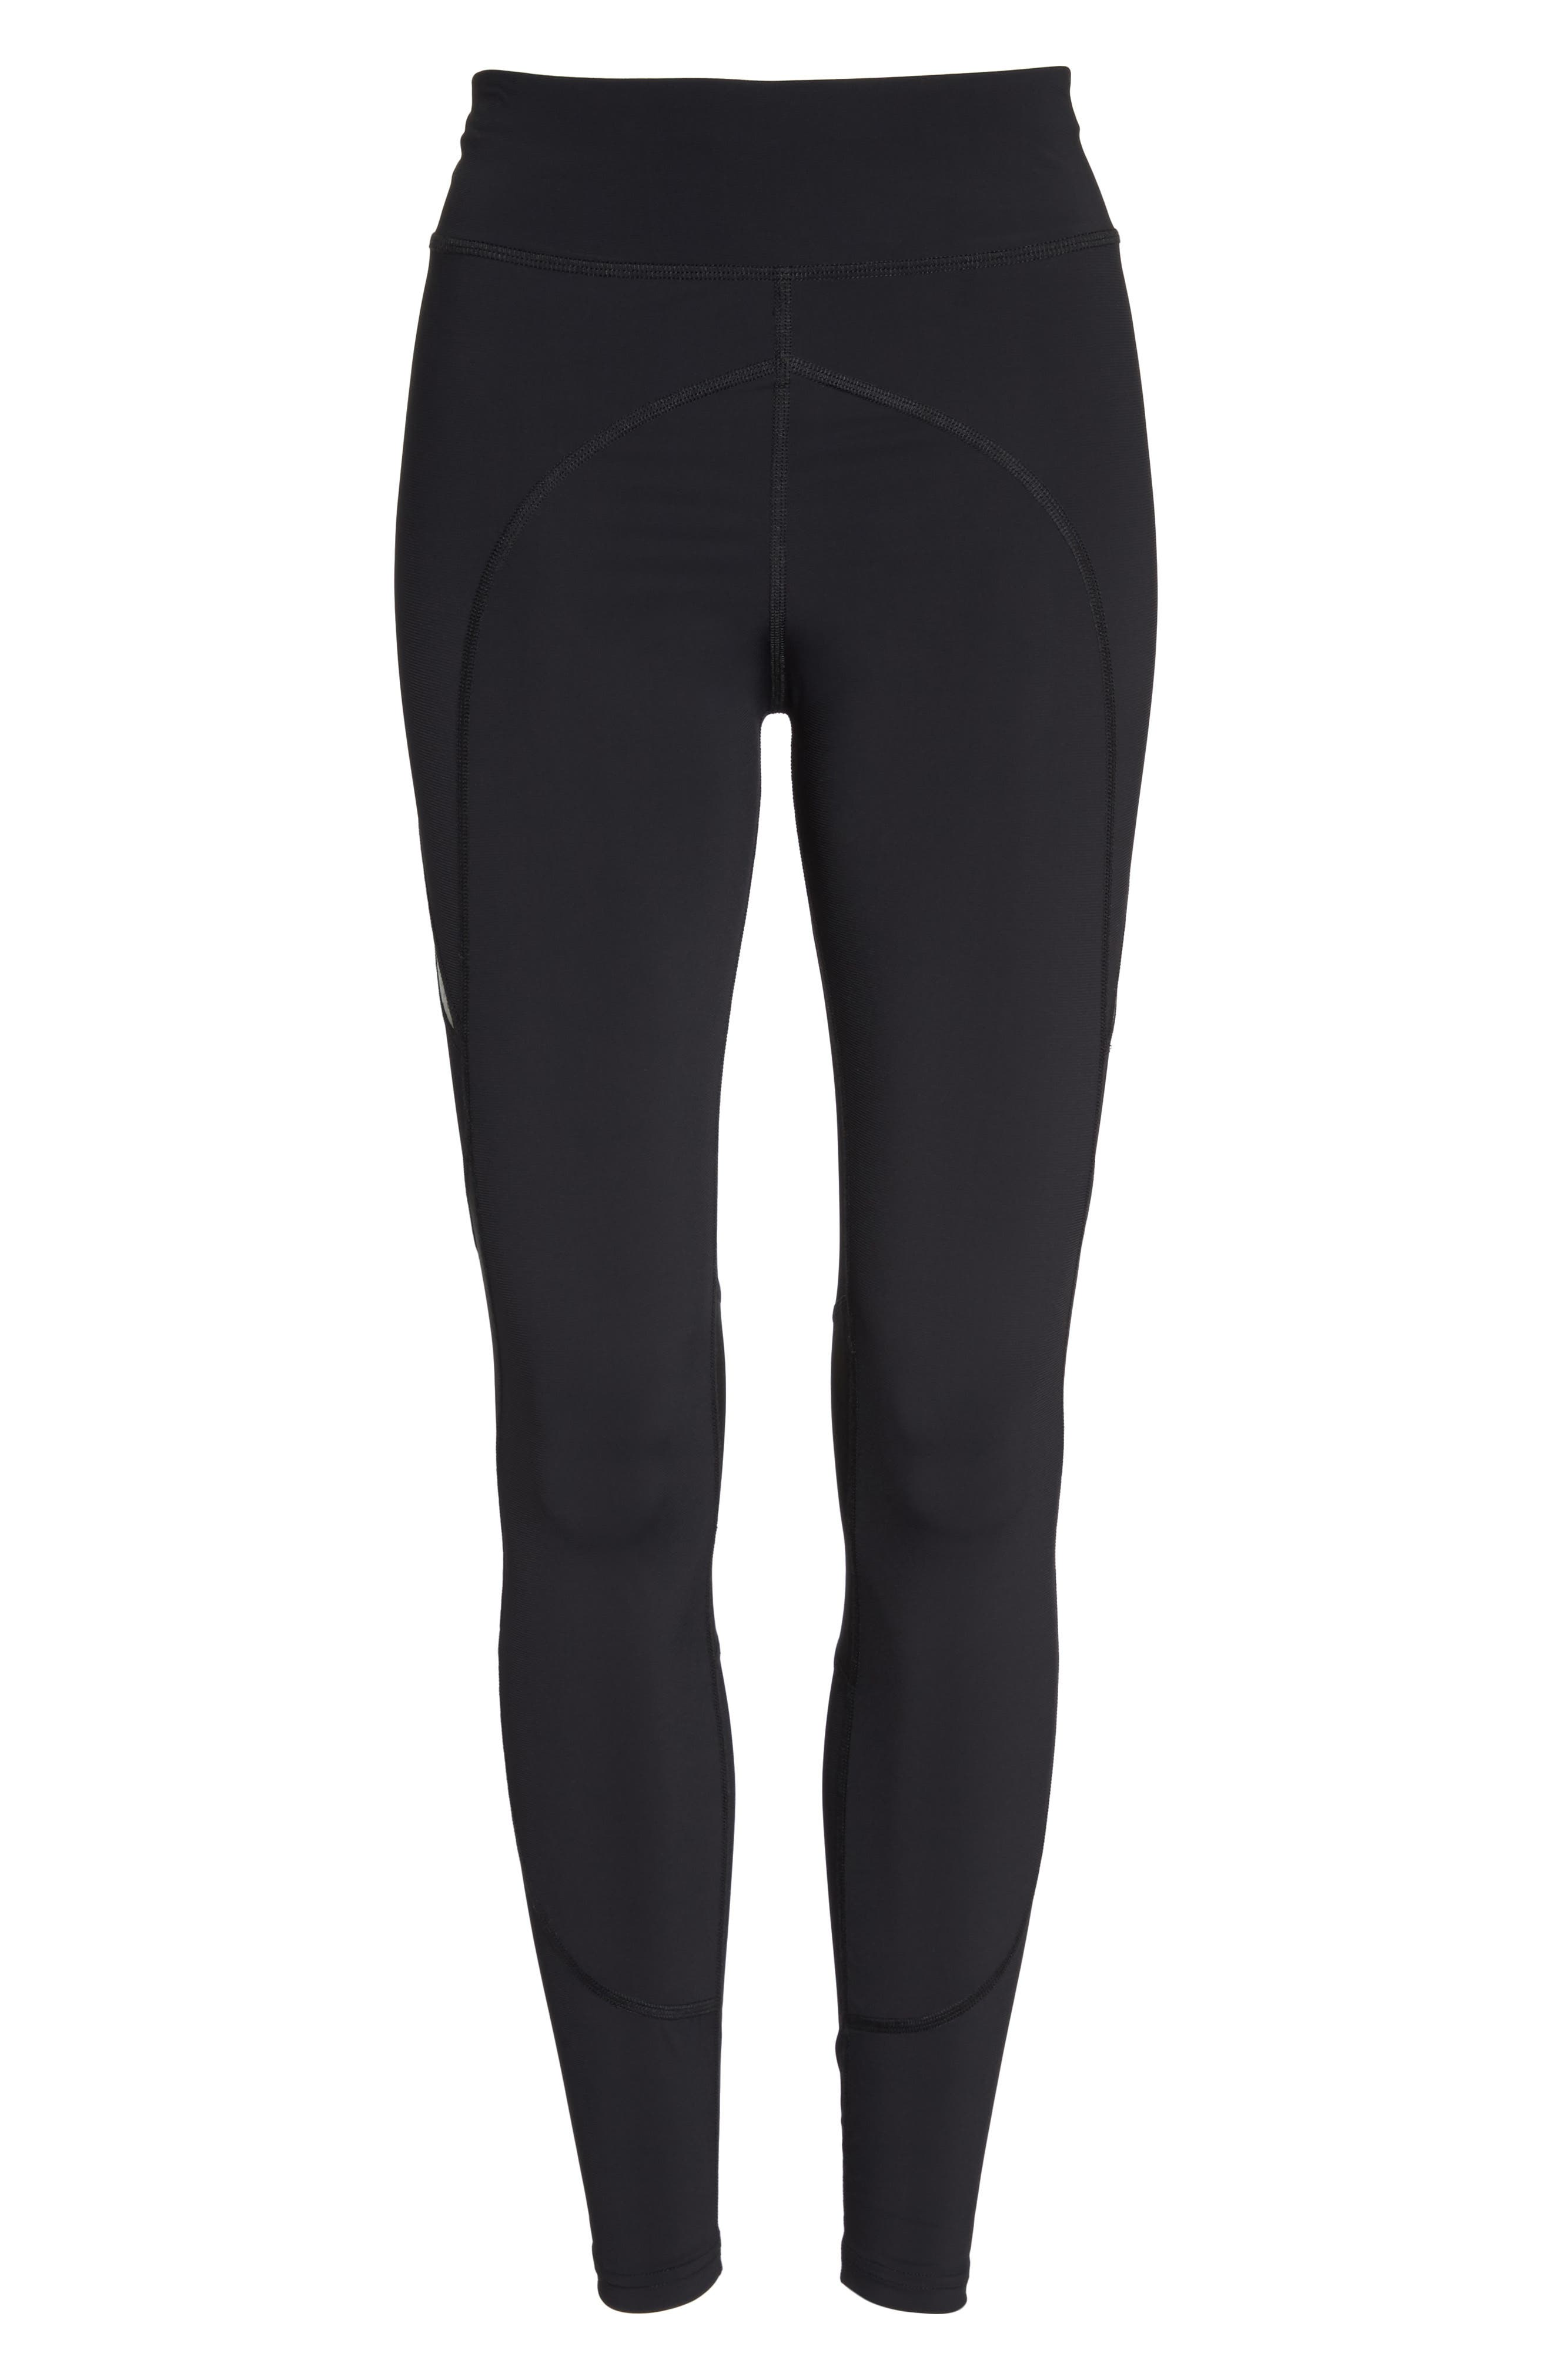 BoomBoom Athletica High Compression Sport Leggings,                             Alternate thumbnail 7, color,                             005